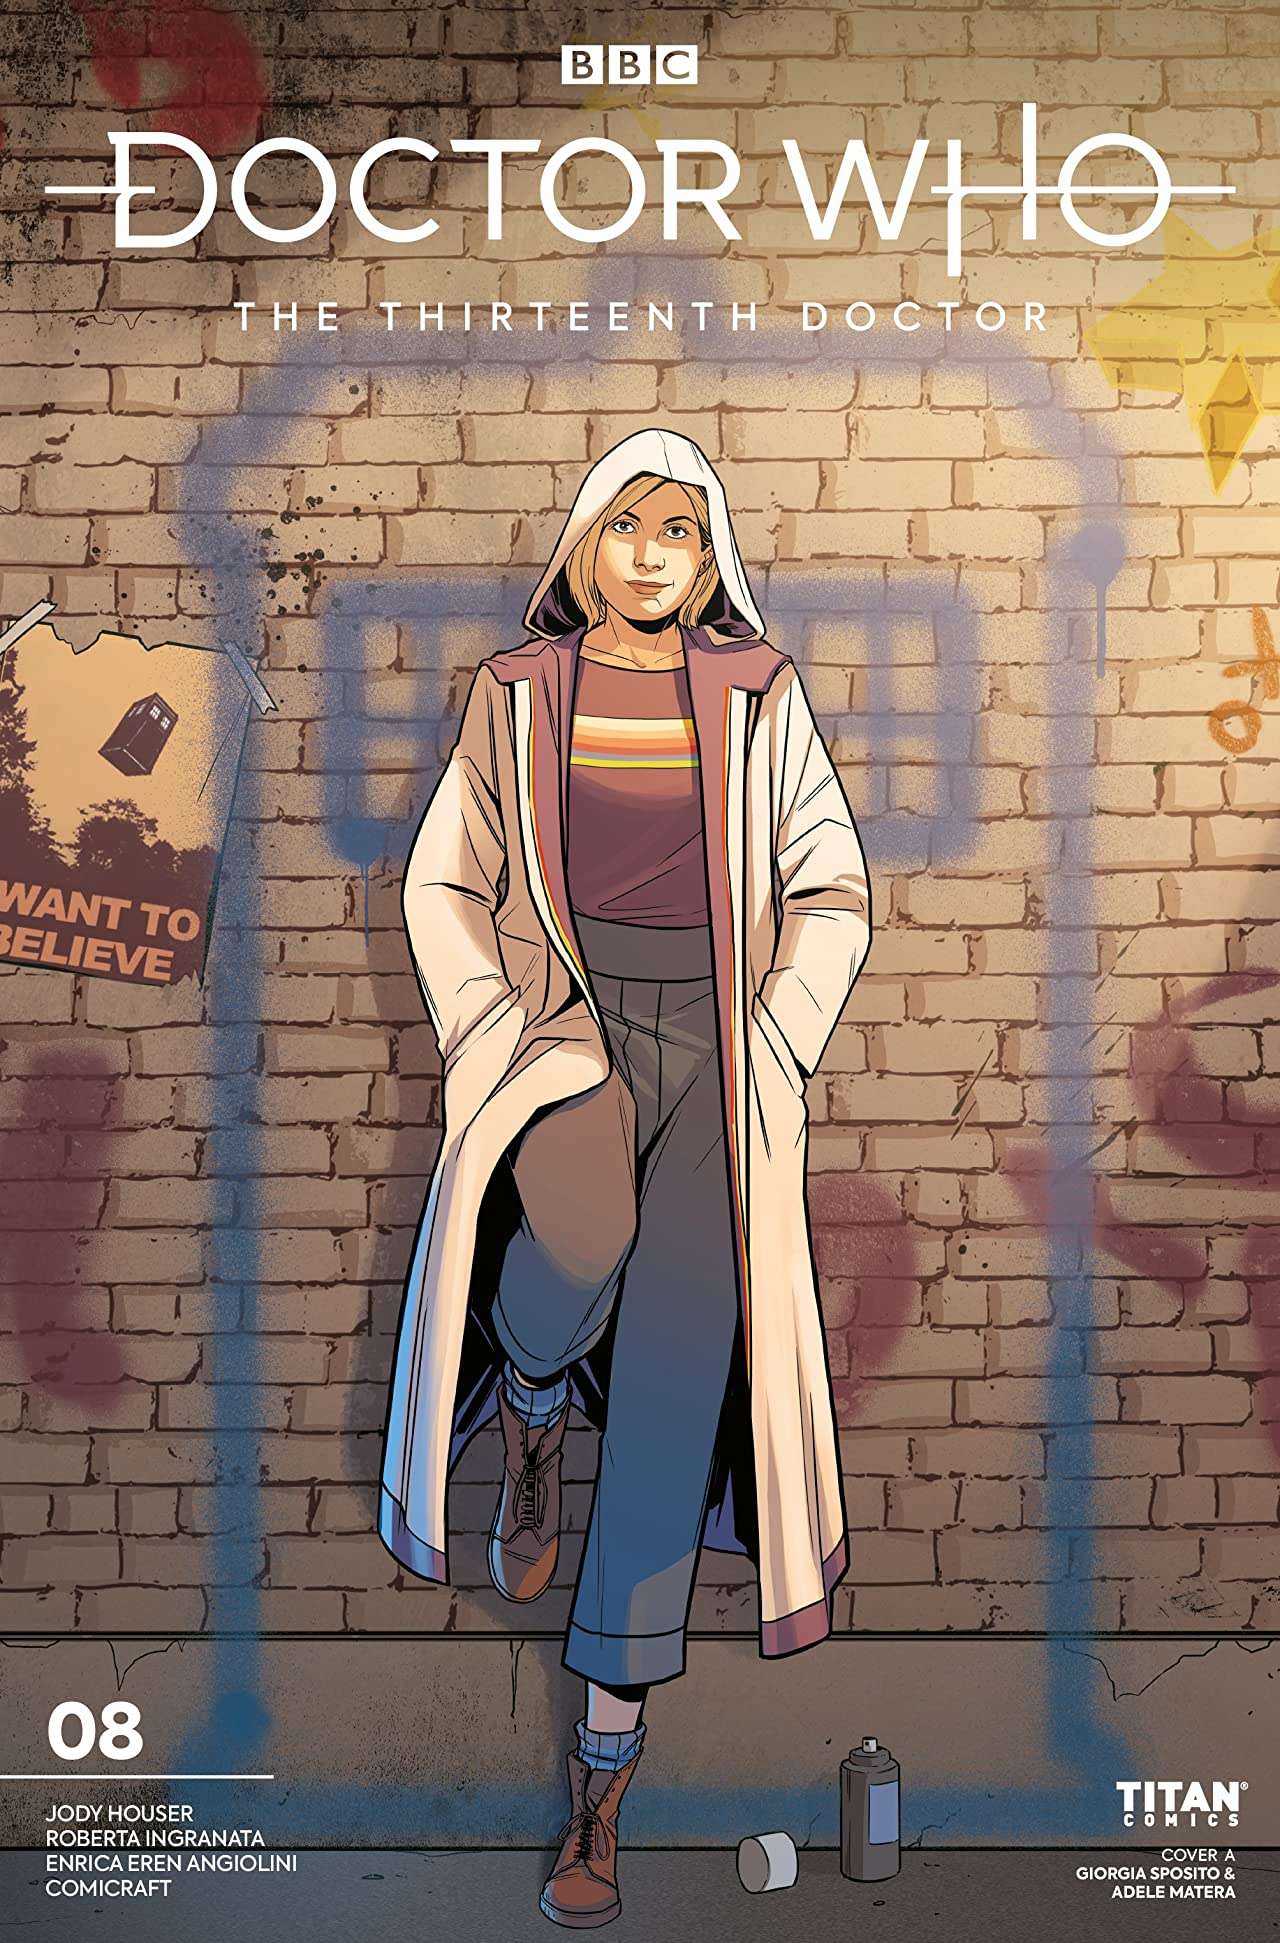 Doctor Who: The Thirteenth Doctor #8